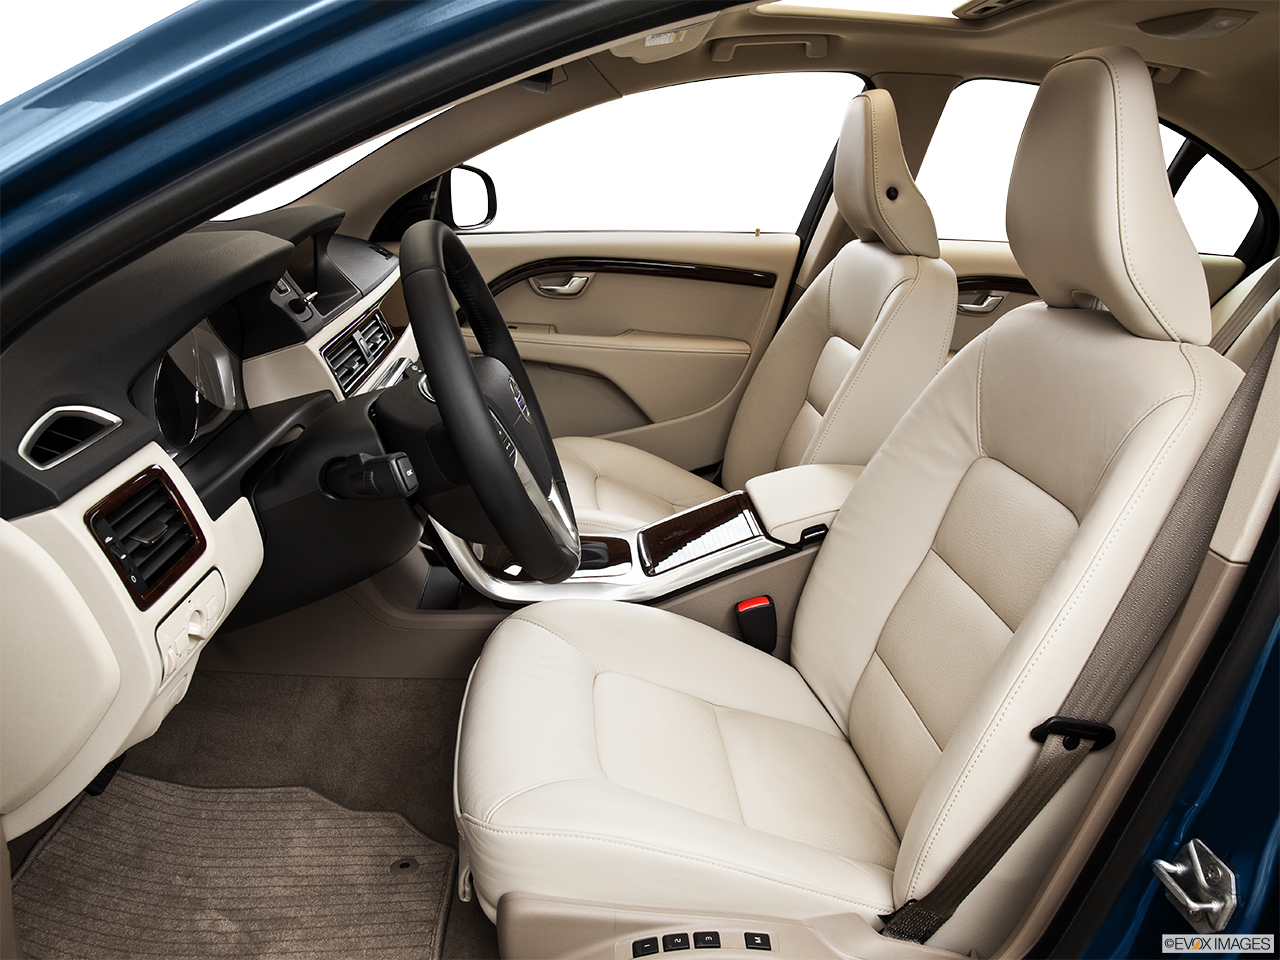 2014 Volvo S80 T6 AWD Platinum Front seats from Drivers Side.